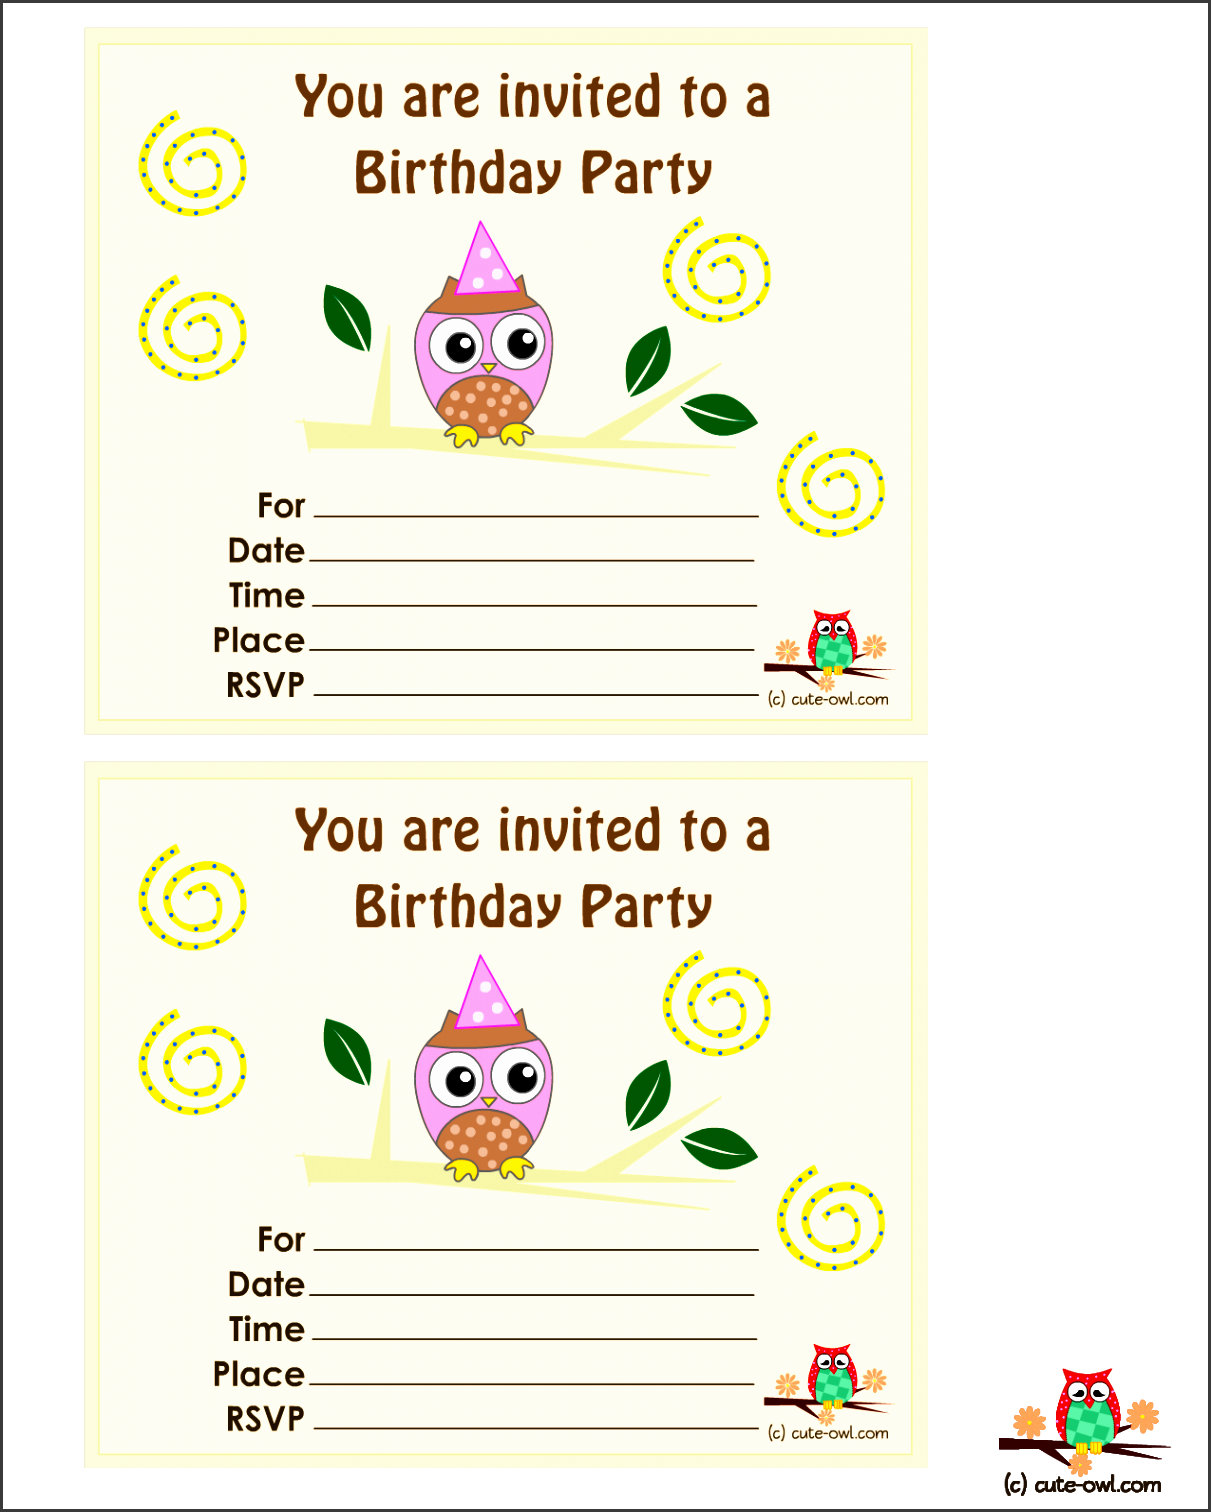 birthday party then these invitations with pink owl